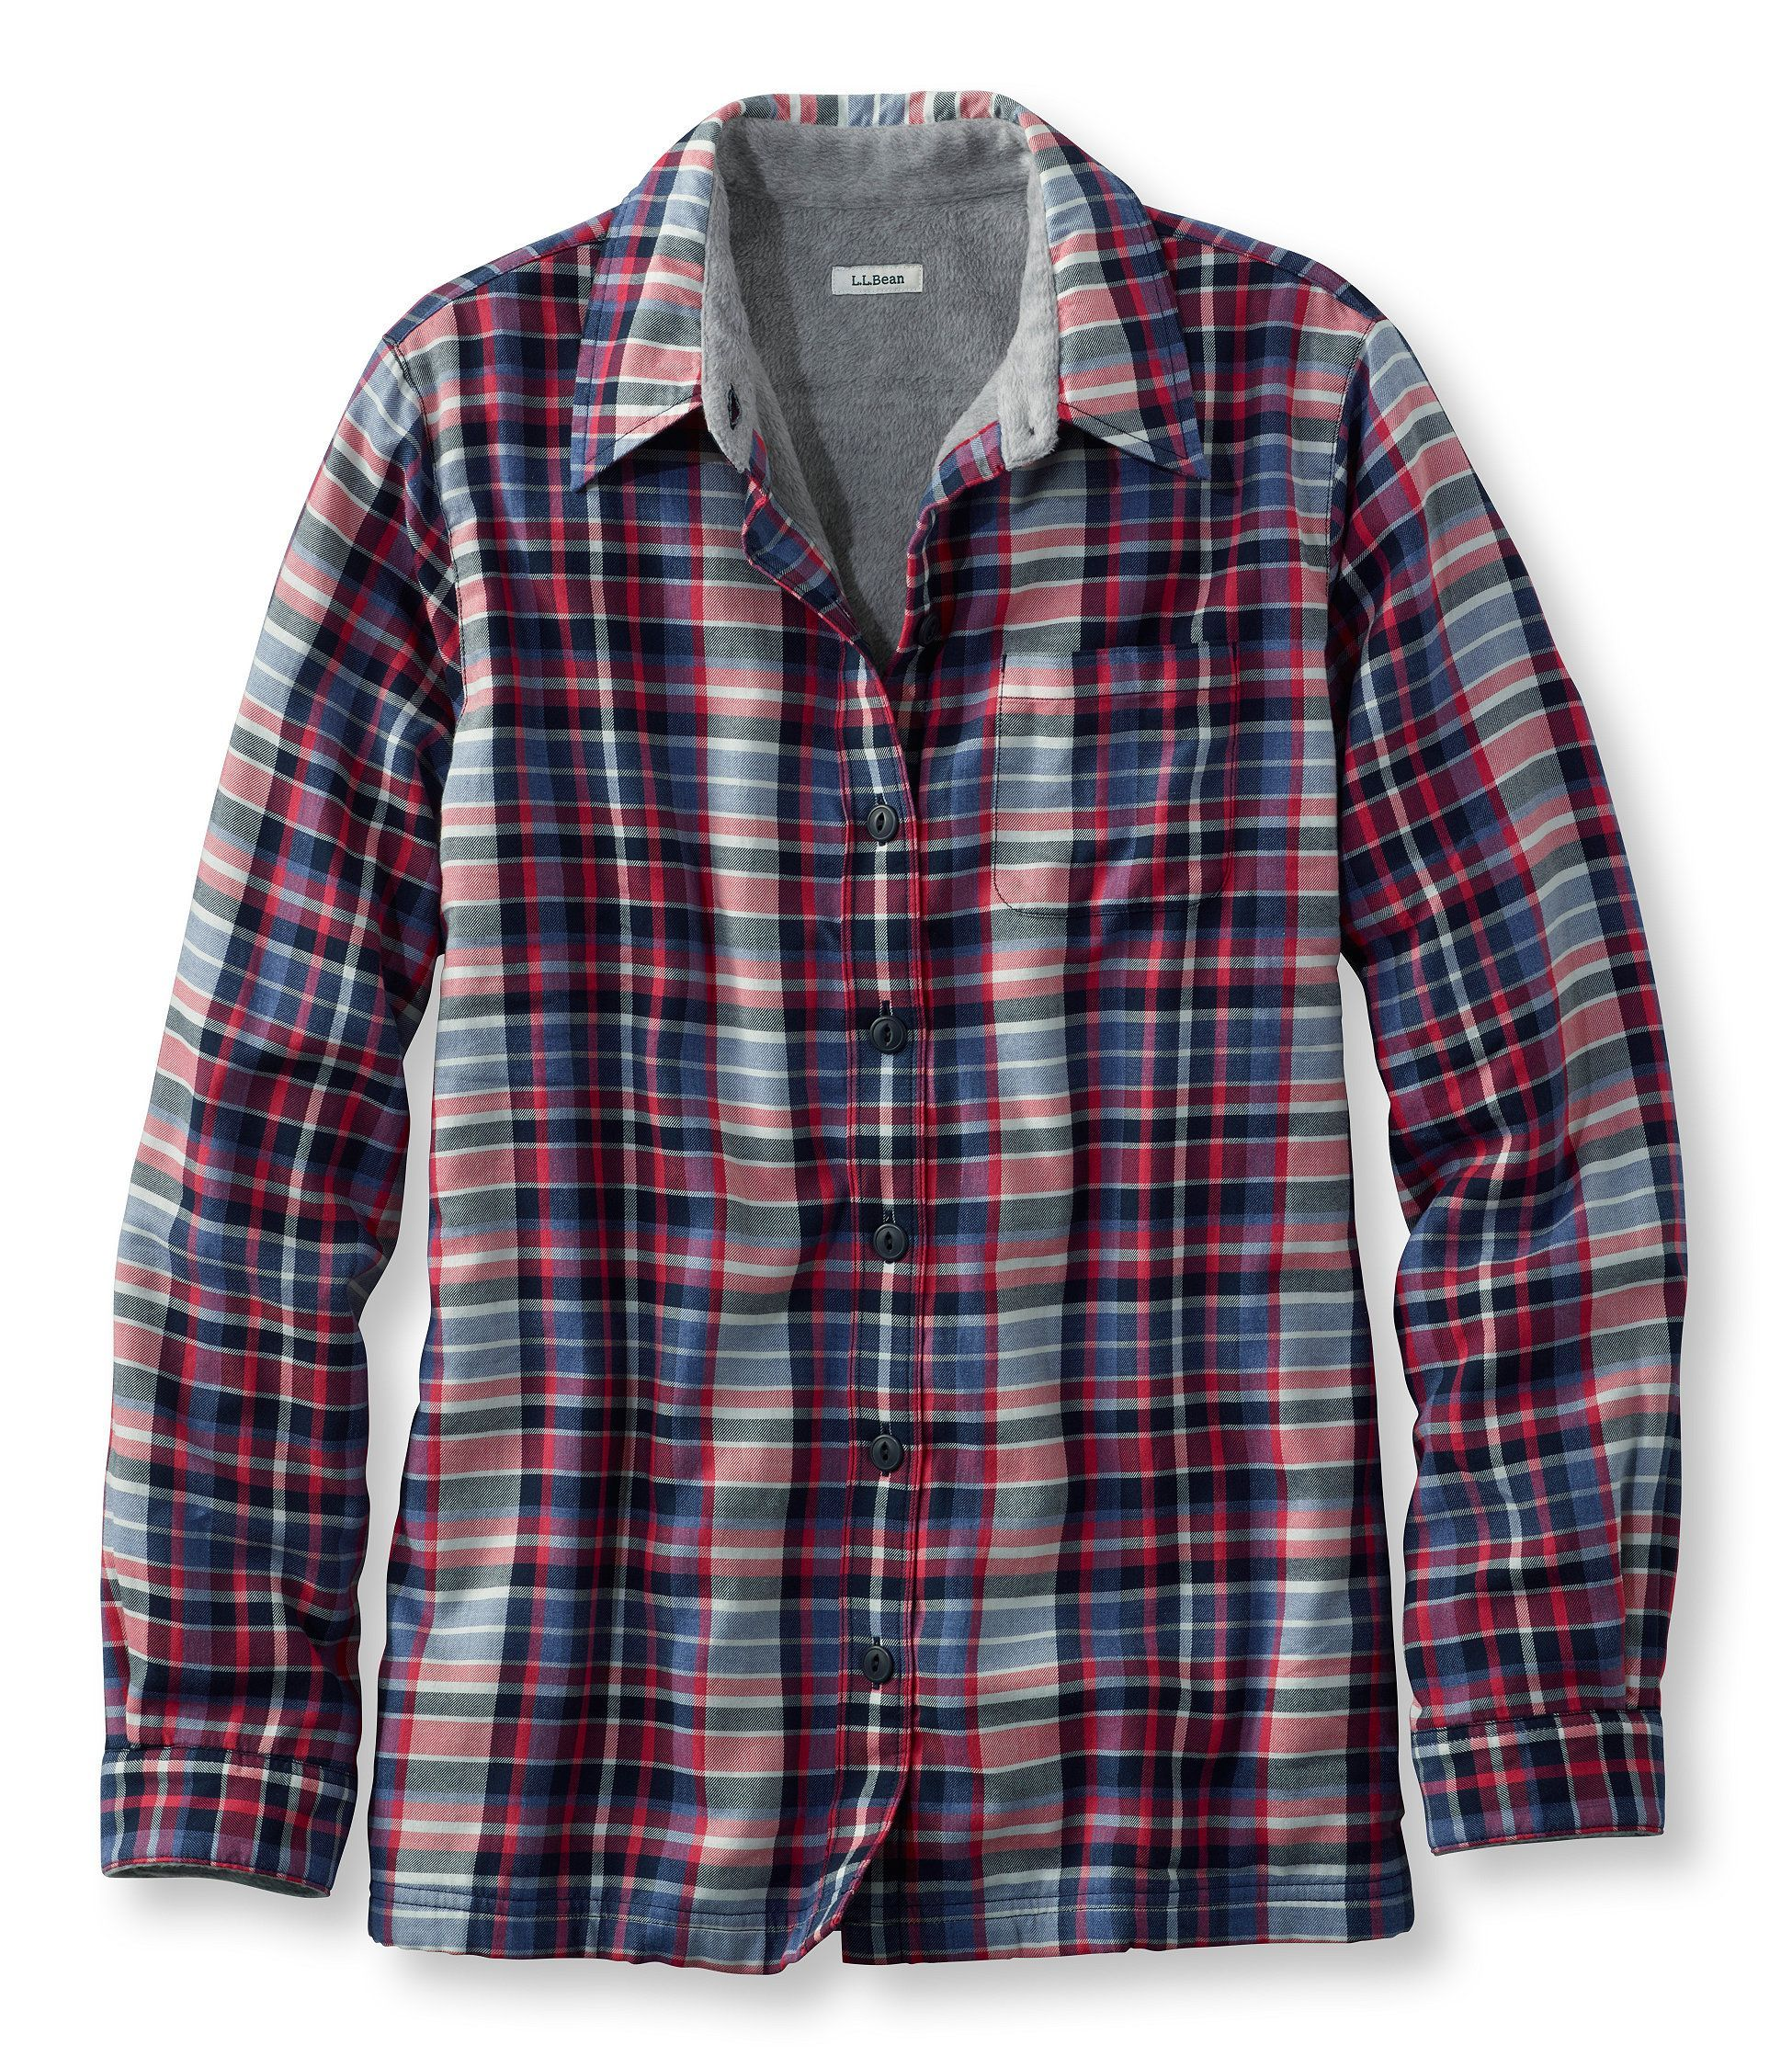 Fleece vs flannel  FleeceLined Flannel Shirt  wear  Pinterest  Flannel shirts and